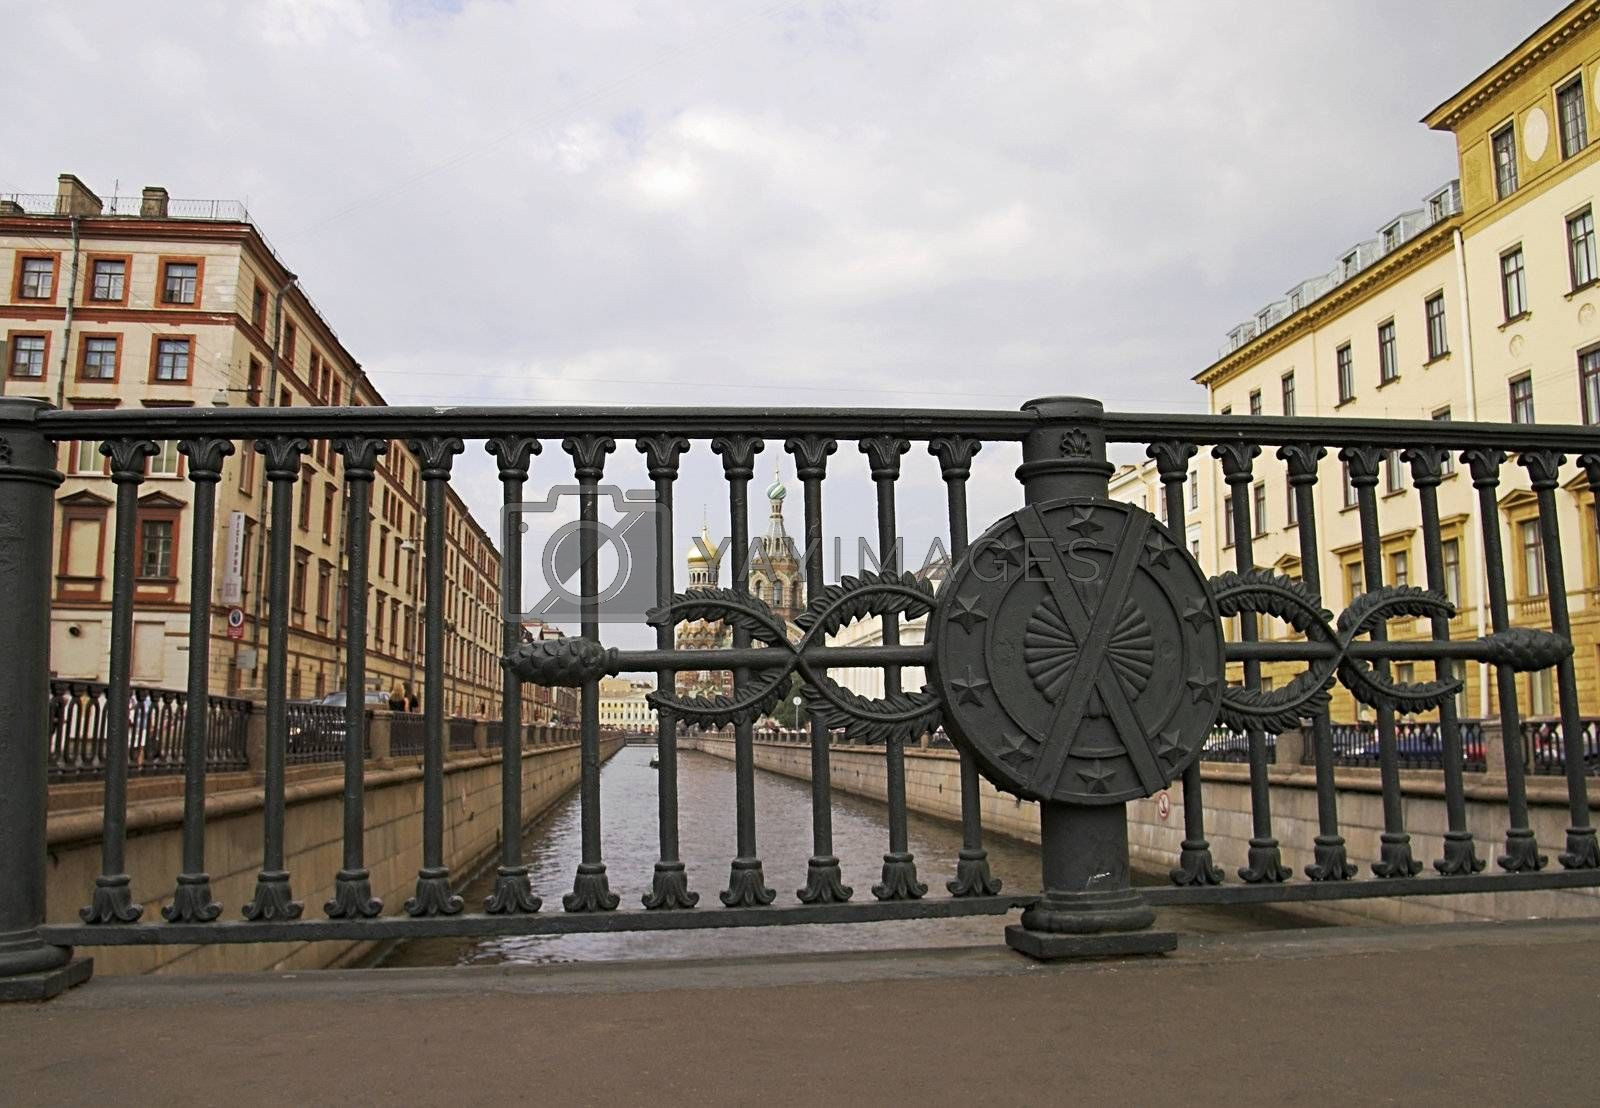 A view from a bridge over Griboyedov\'s Channel in Saint Petersburg, Russia. The Church of the Saviour-on-Blood is seen in the background through the railings.